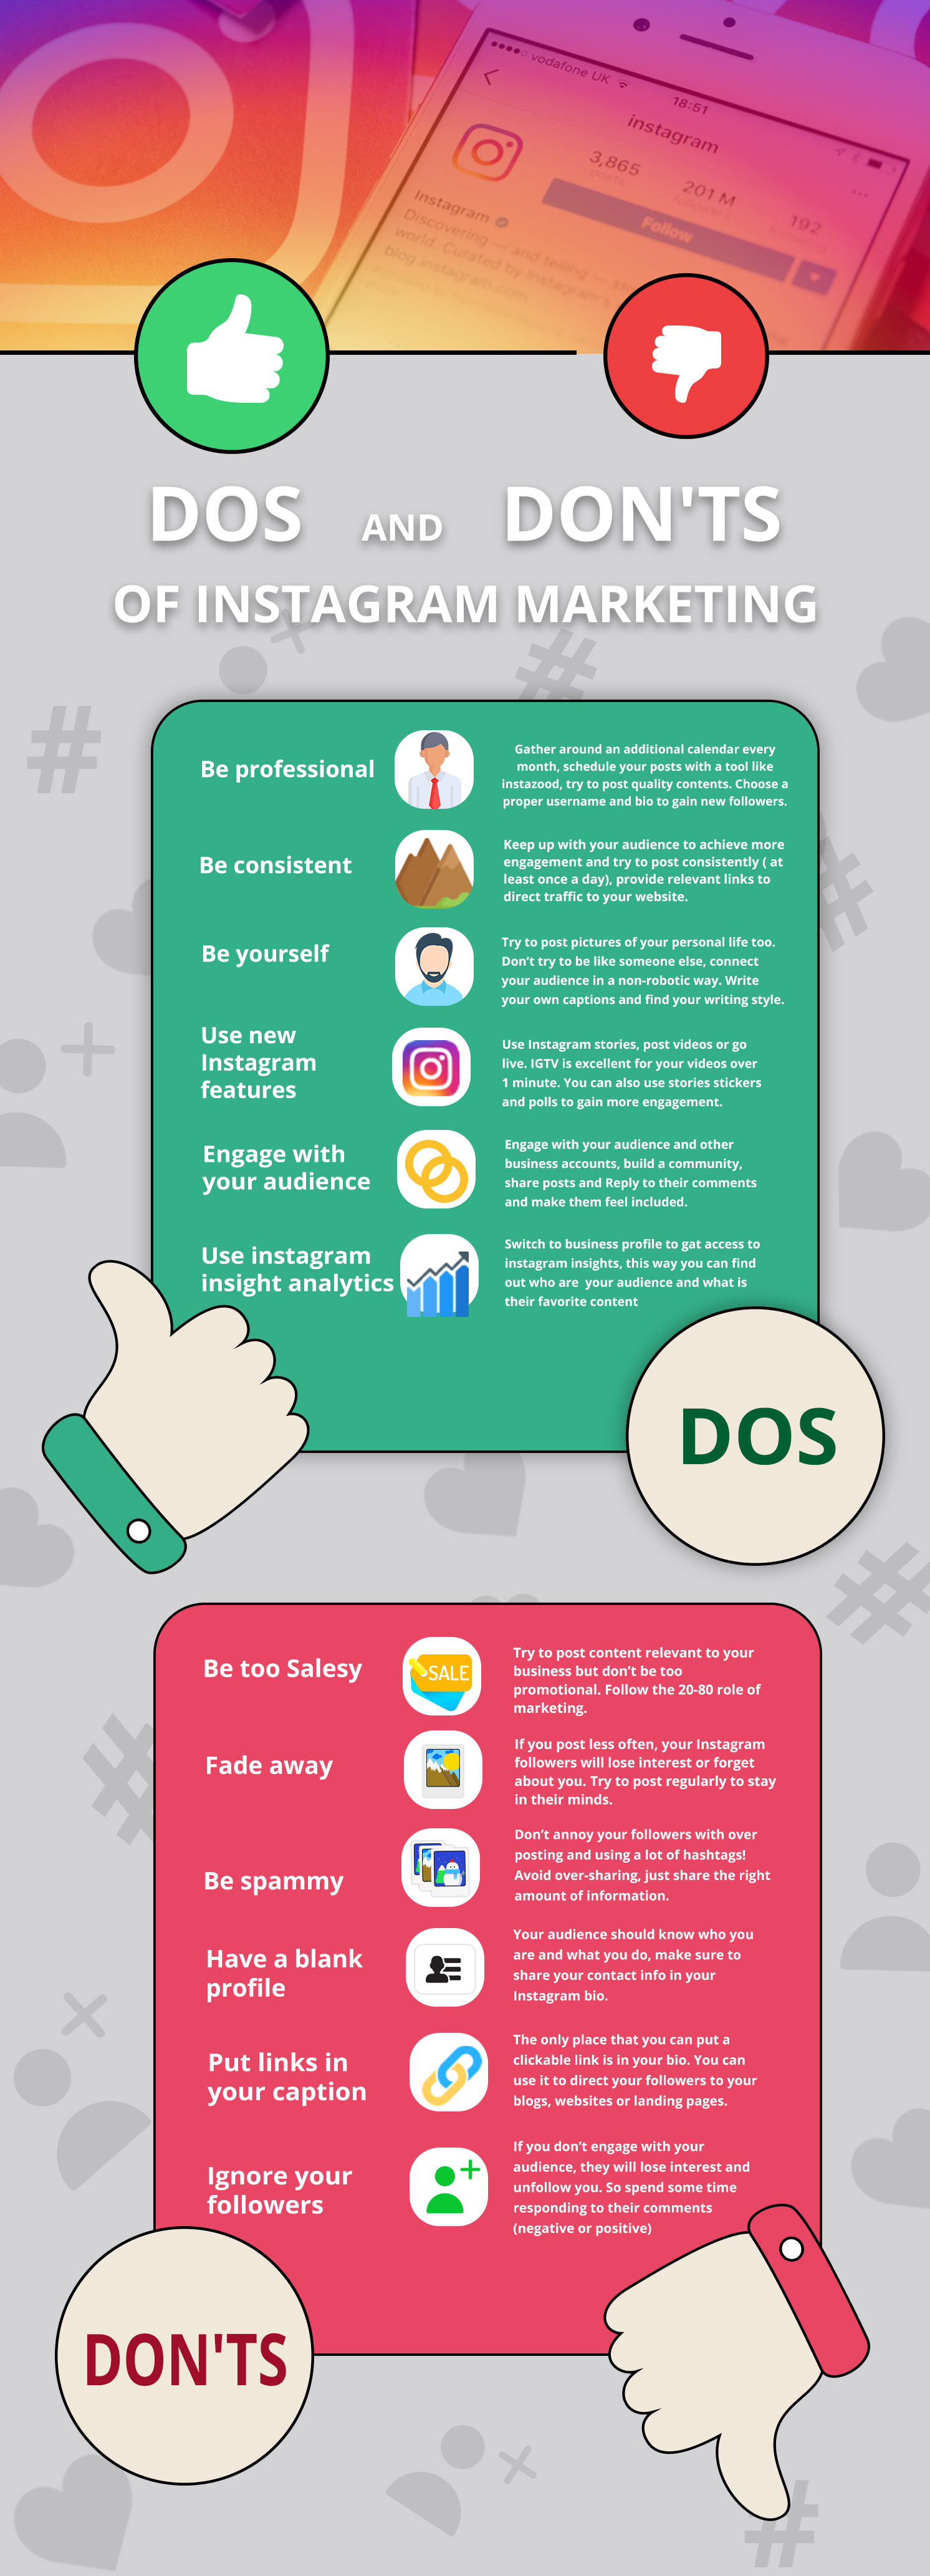 THE DOS AND DON'TS OF INSTAGRAM MARKETING